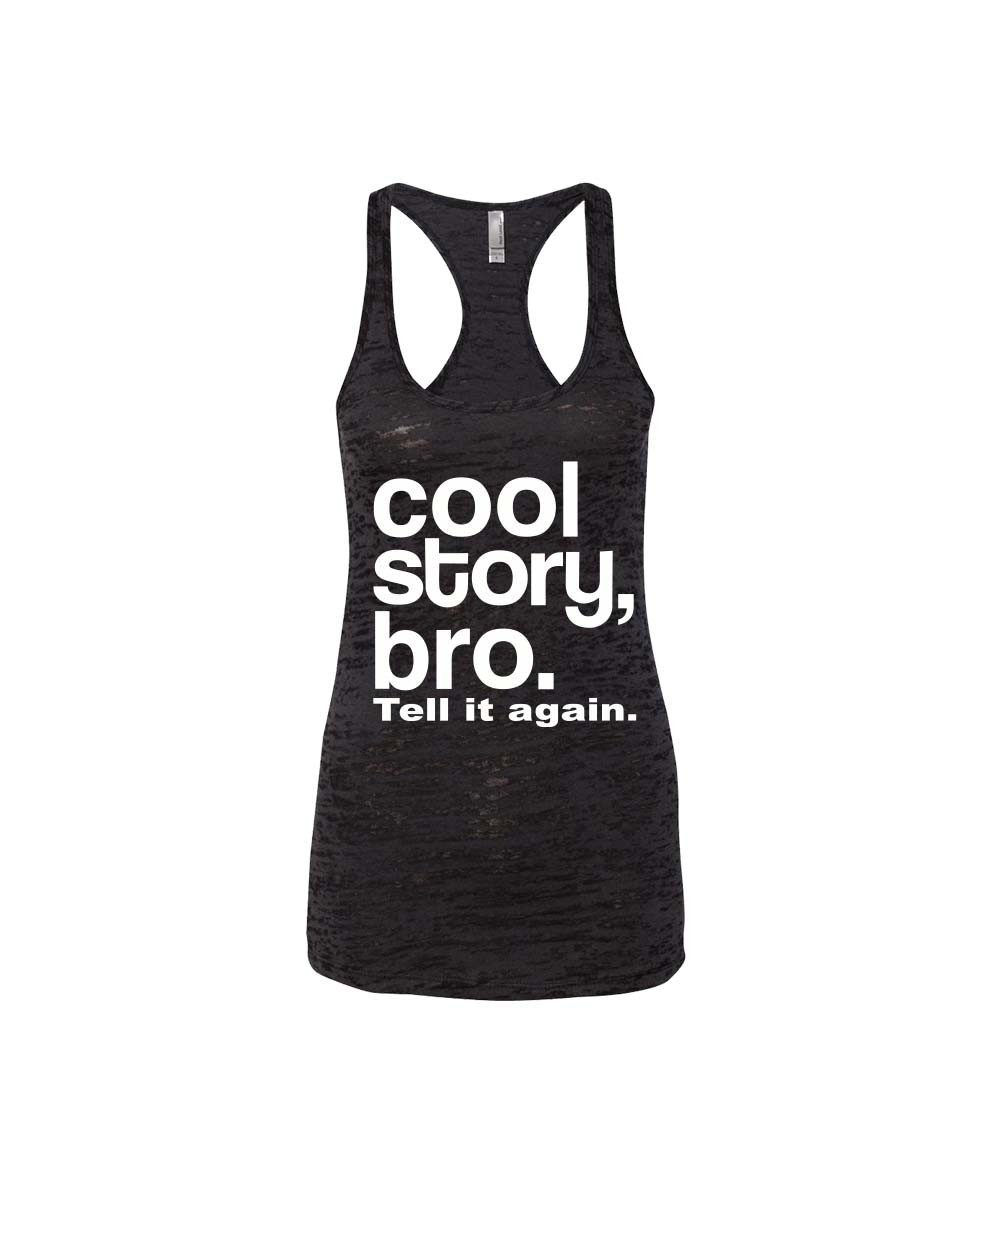 767599d0fca71 Cool Story bro Tell It Again Racerback Burnout Tank Top Usa Women Tank Top  Size S